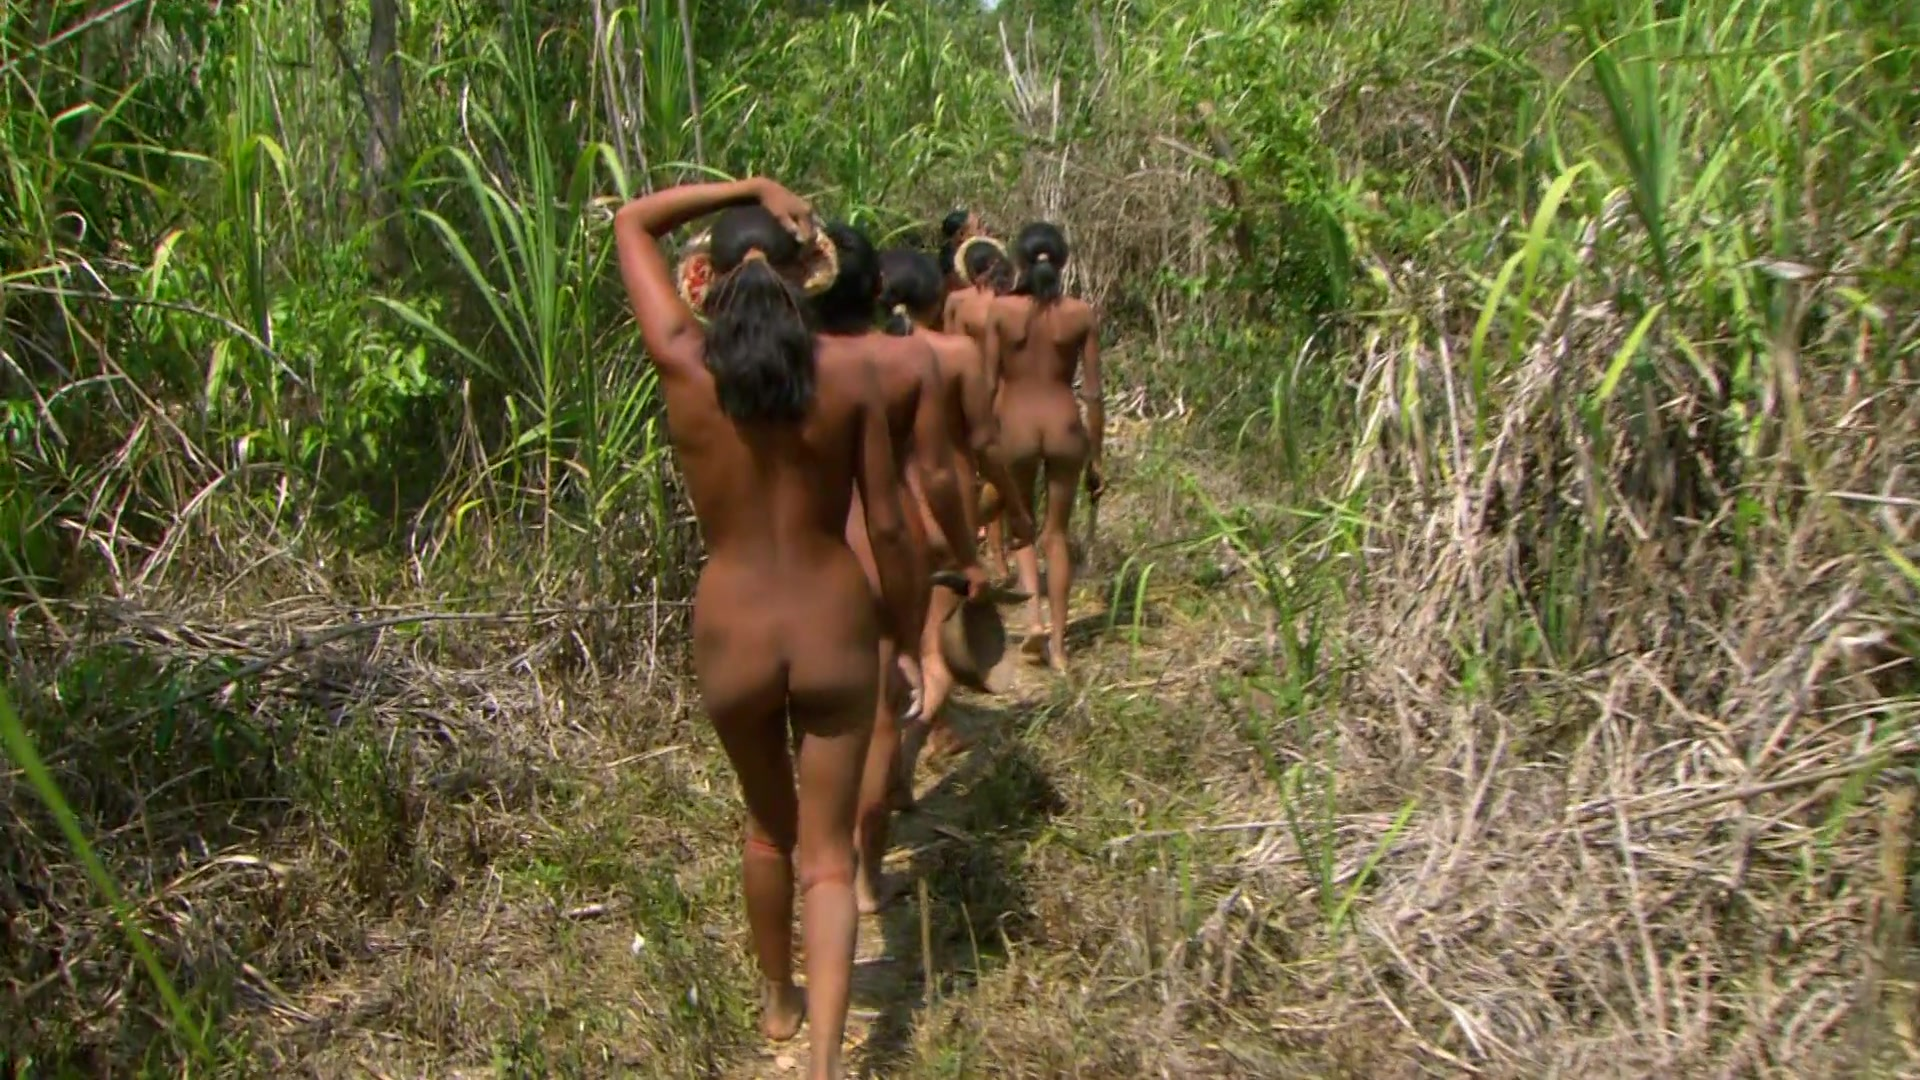 Naked indigenoue from amazon erotica galleries